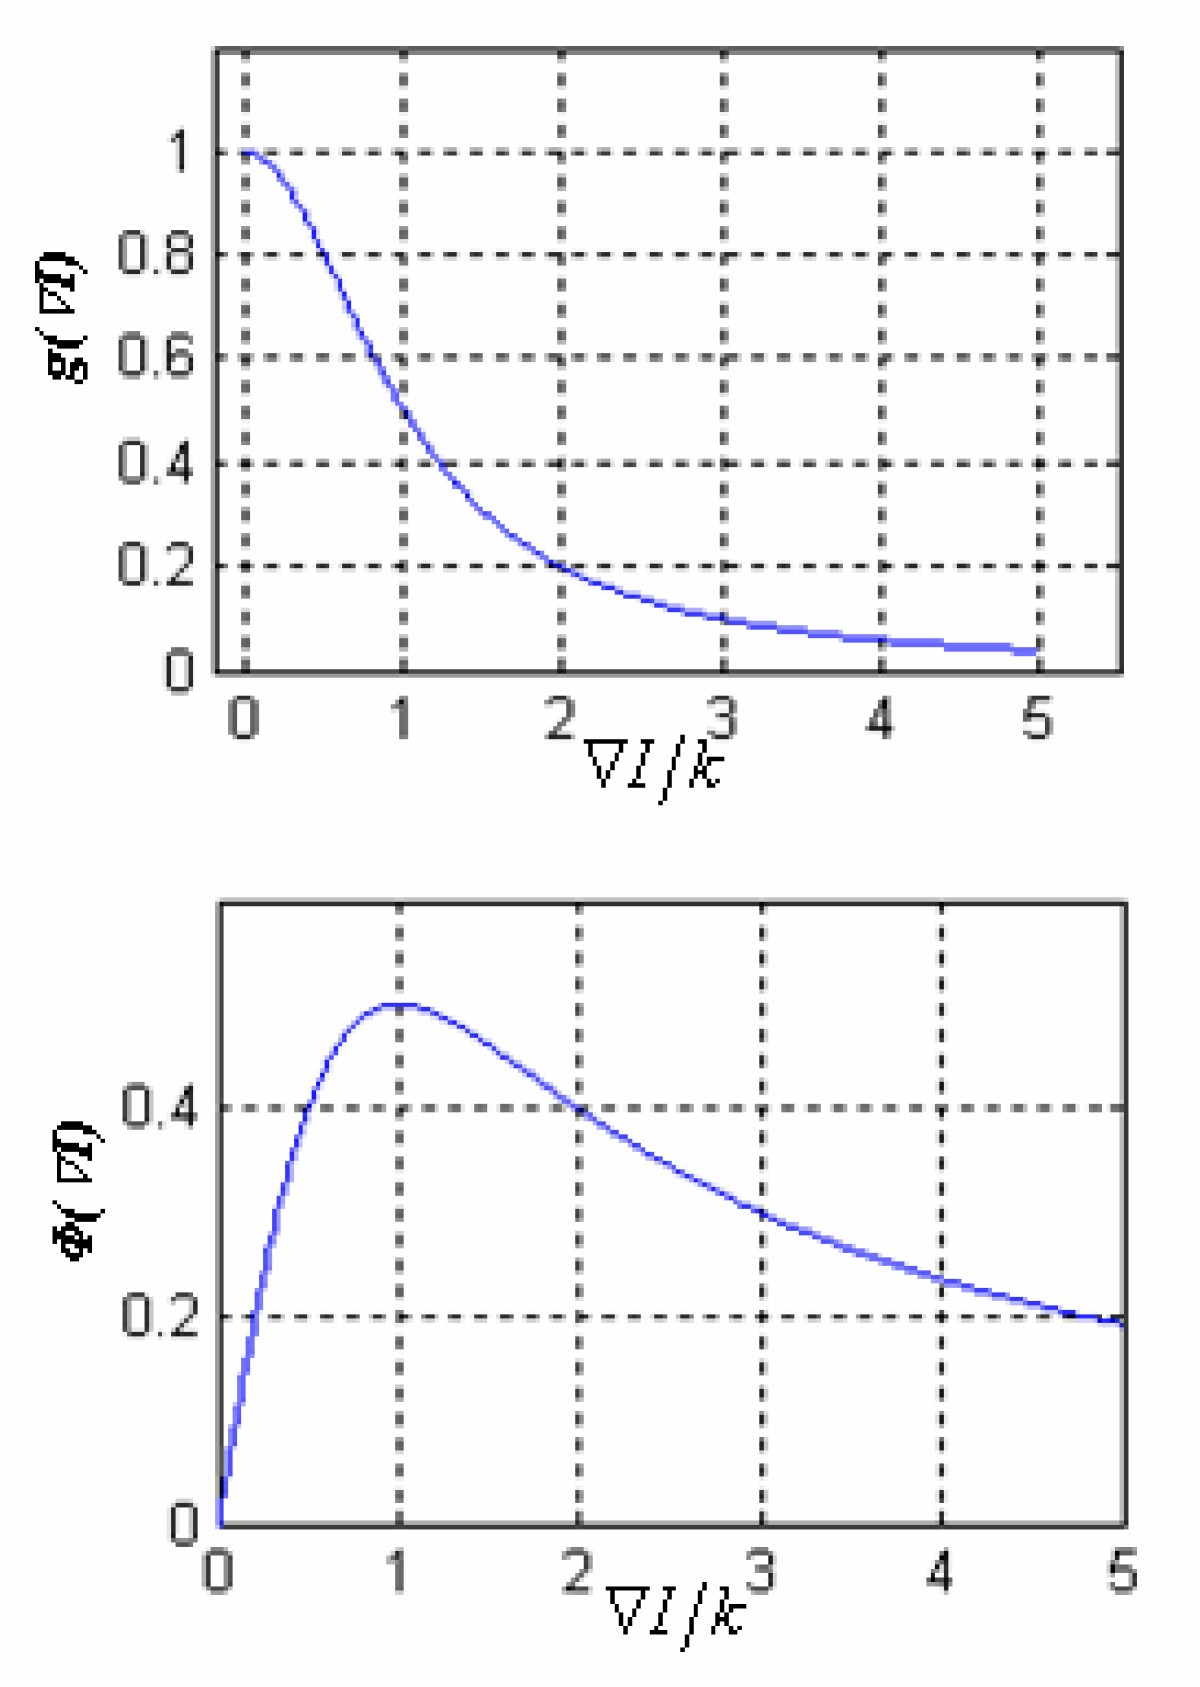 Weld Defect Detection Using A Modified Anisotropic Diffusion Model Welding Defects Diagram Figure 5